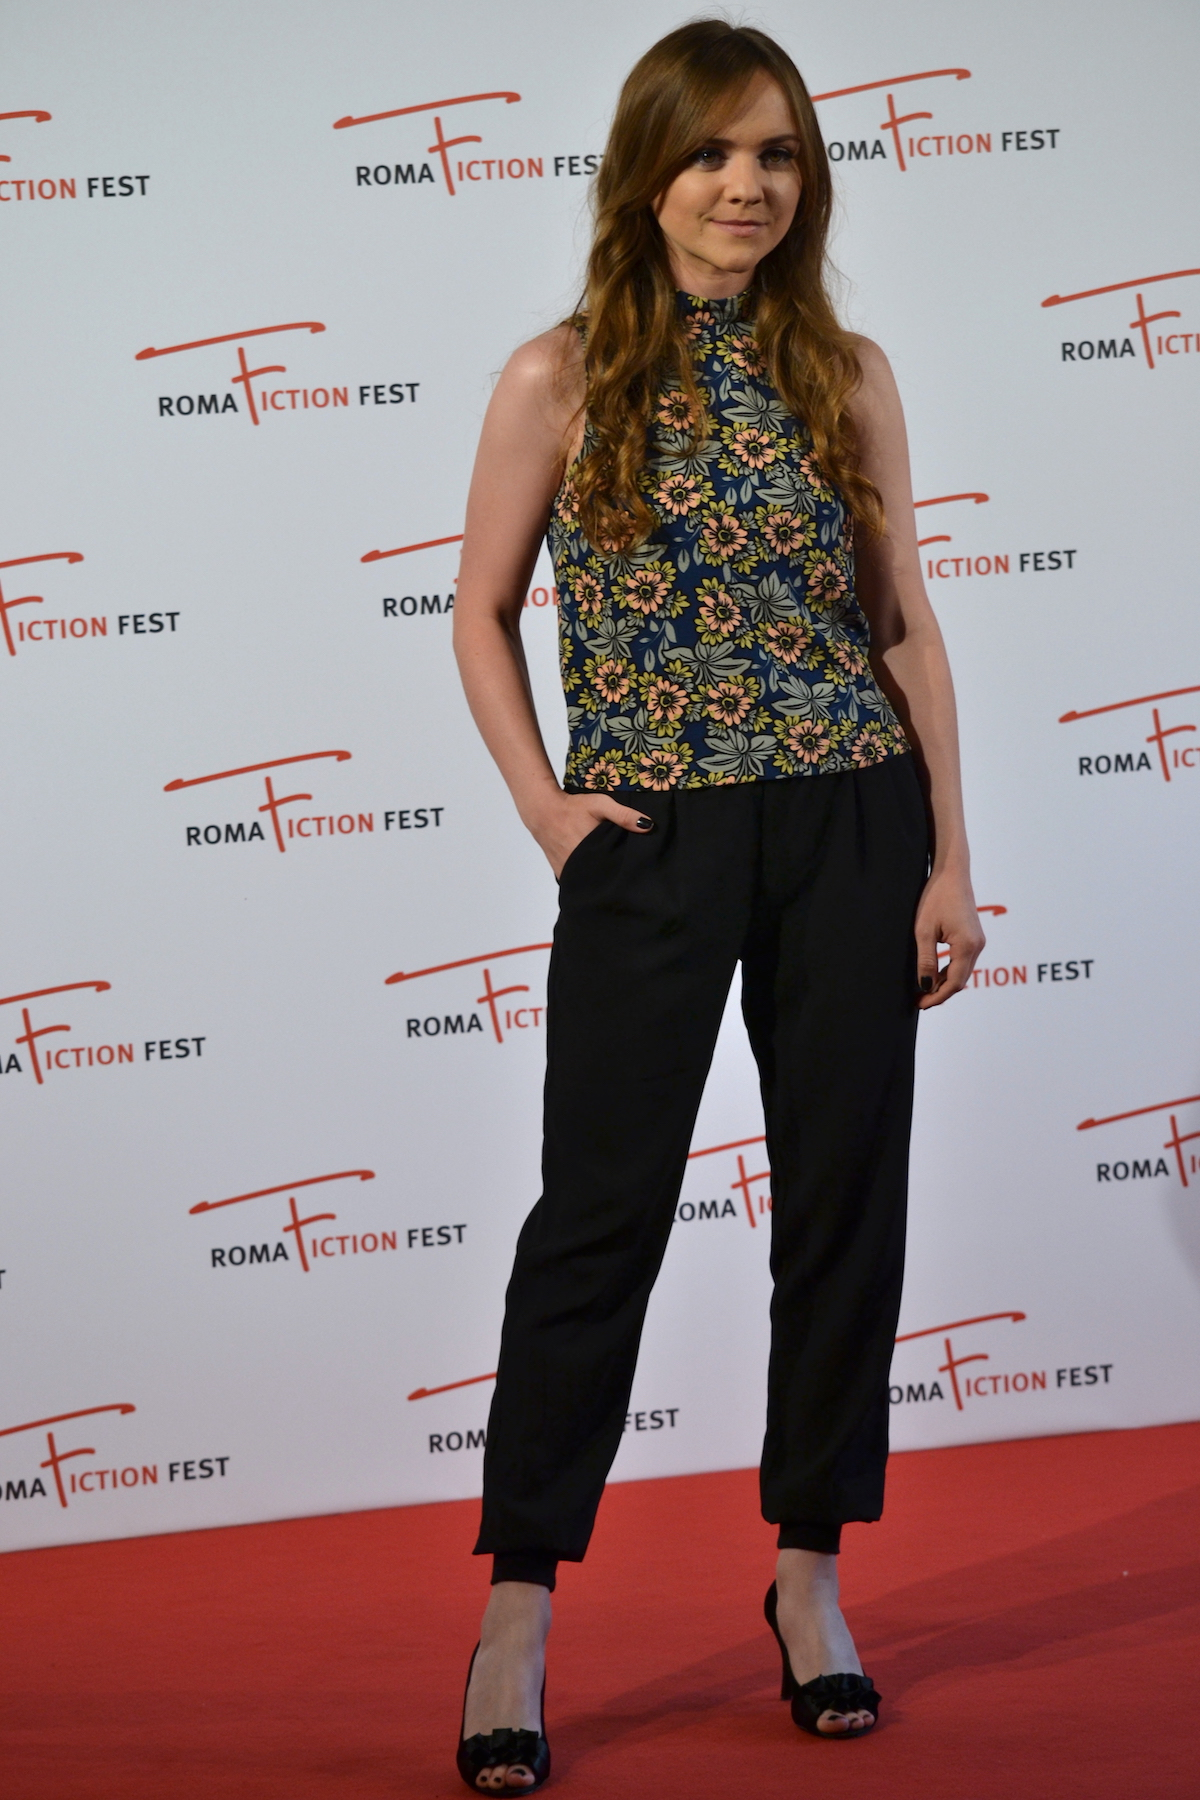 Roma Fiction Fest 2015: Tara Lynne Barr posa al photocall di Casual